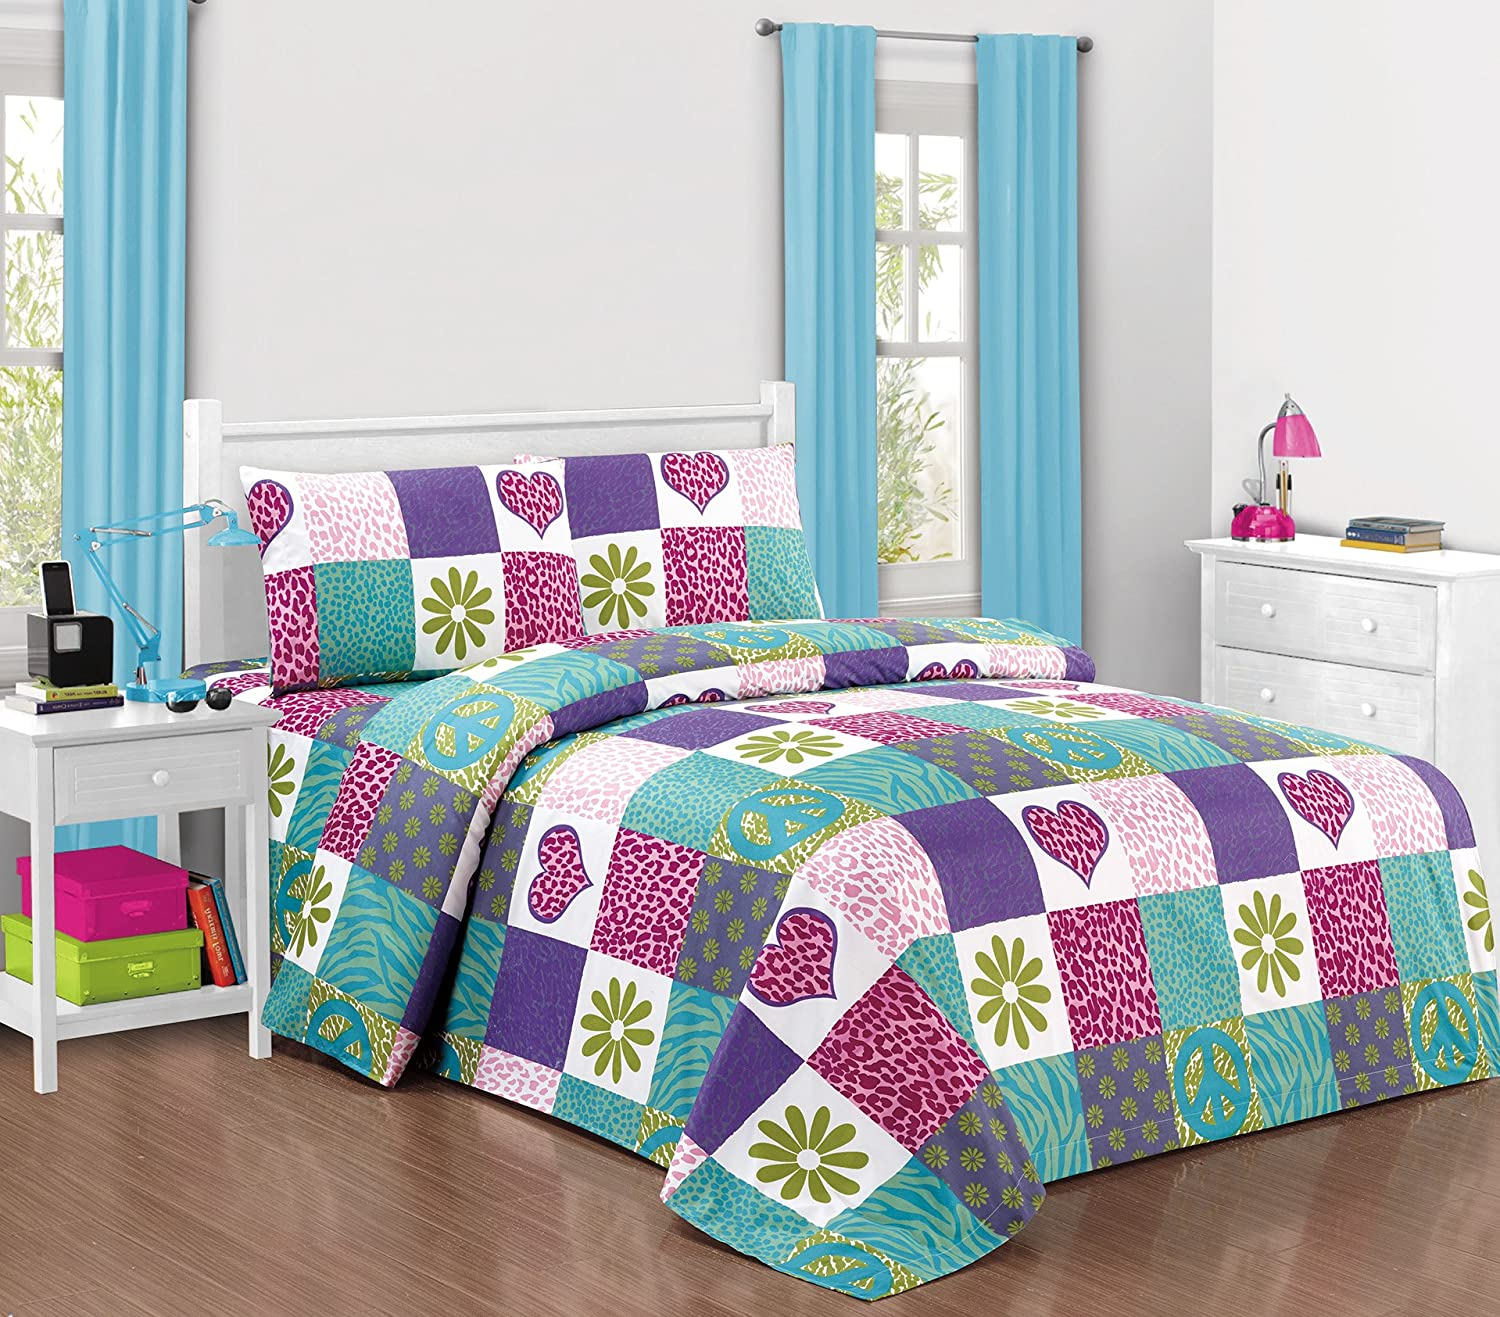 Mk Collection Sheet Set Pink Purple Teal Zebra Leopard Heart Peace Sign Teens/girls